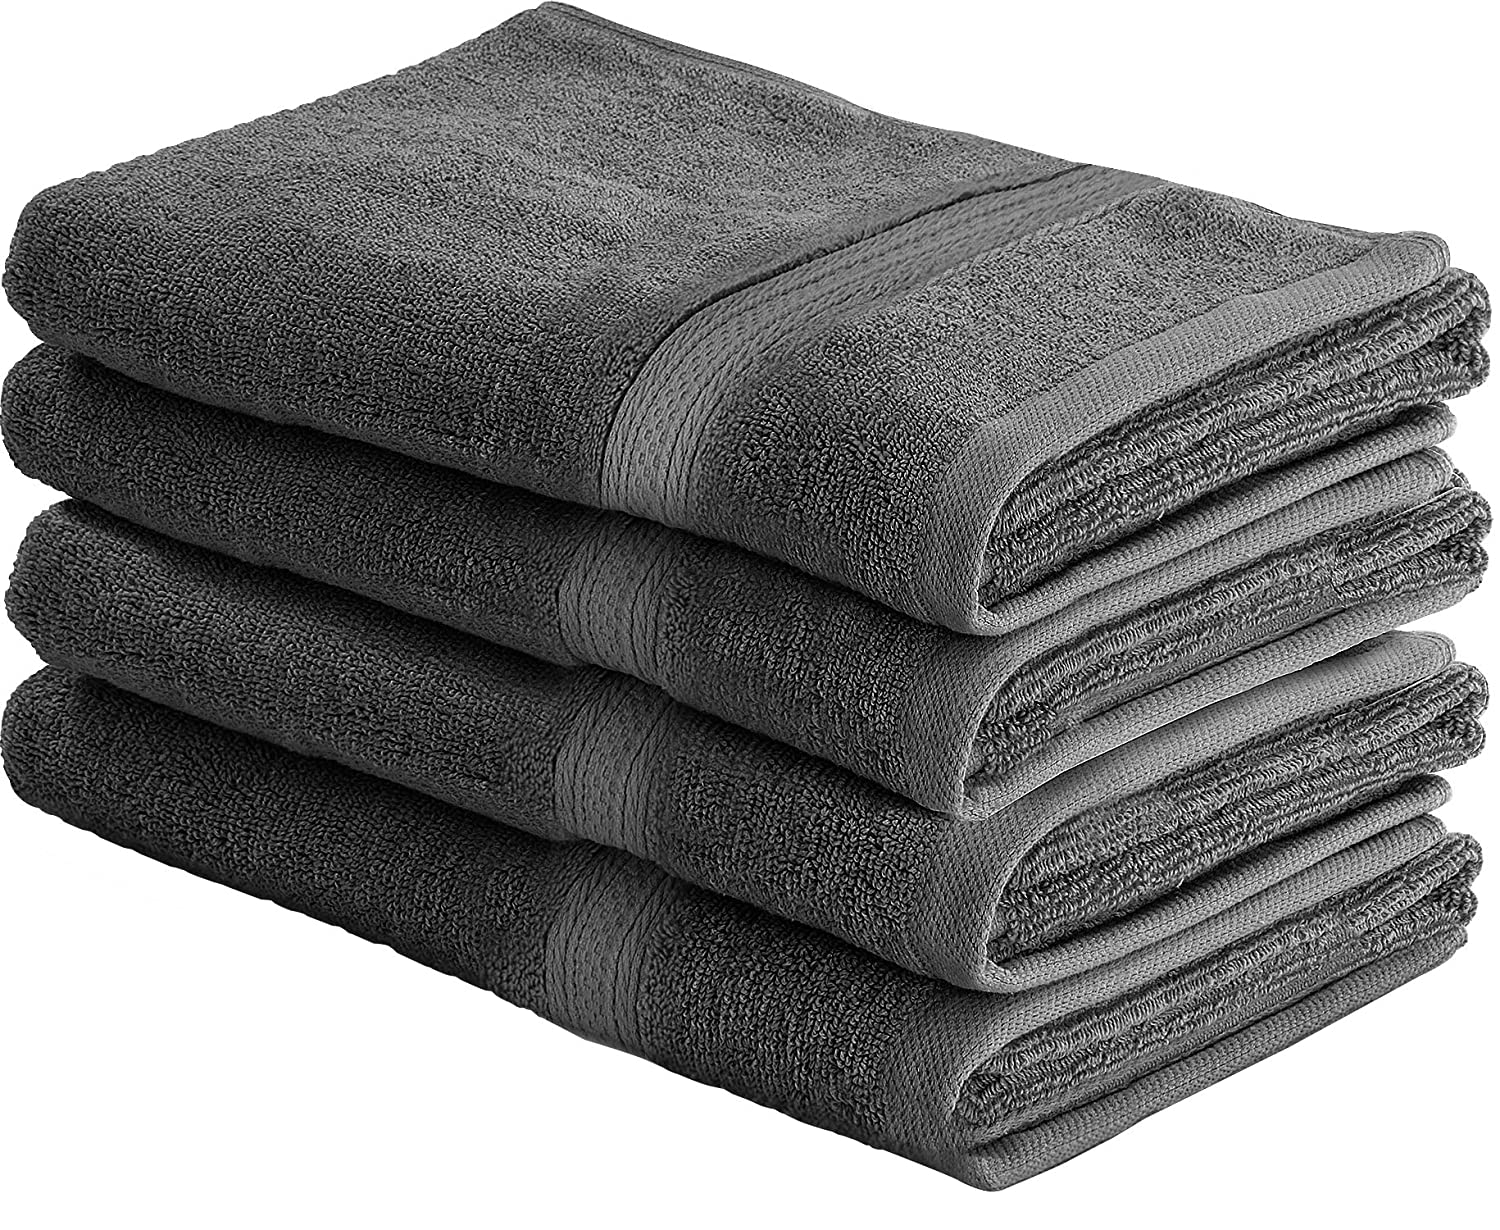 utopia towels 700 gsm cotton 16 inch by 28 inch hand towel set set of 4 grey - Red And Black Print Bath Towels